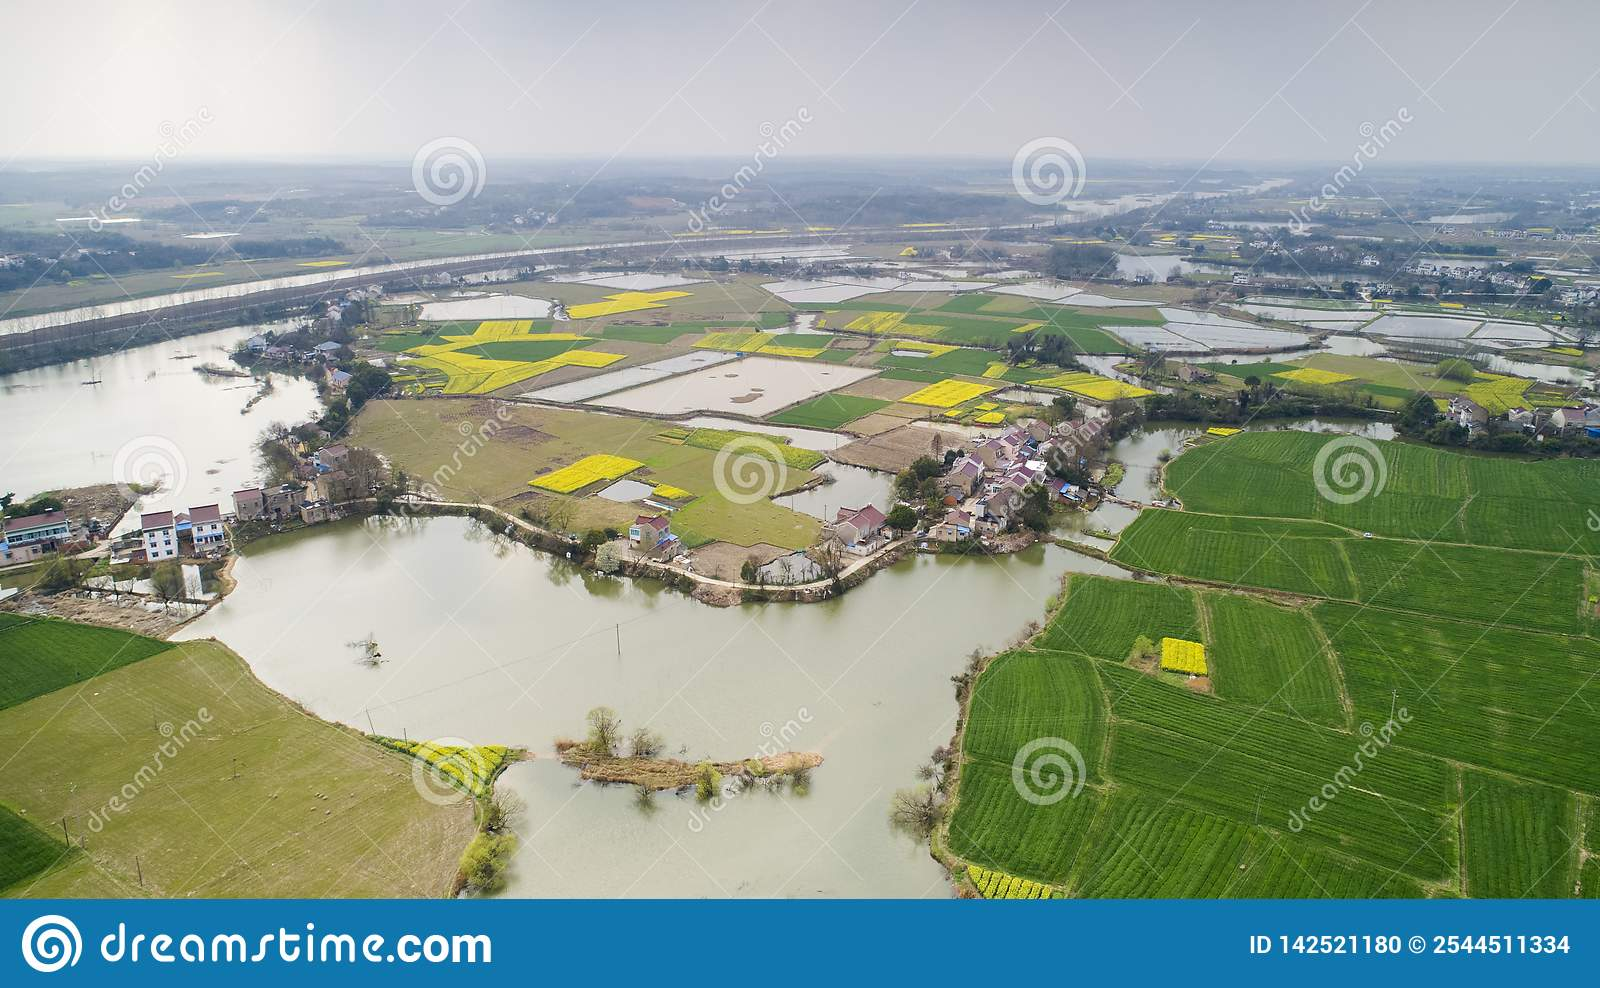 Aerial photo of summer rural ecological pastoral scenery in xuancheng city, anhui province, China